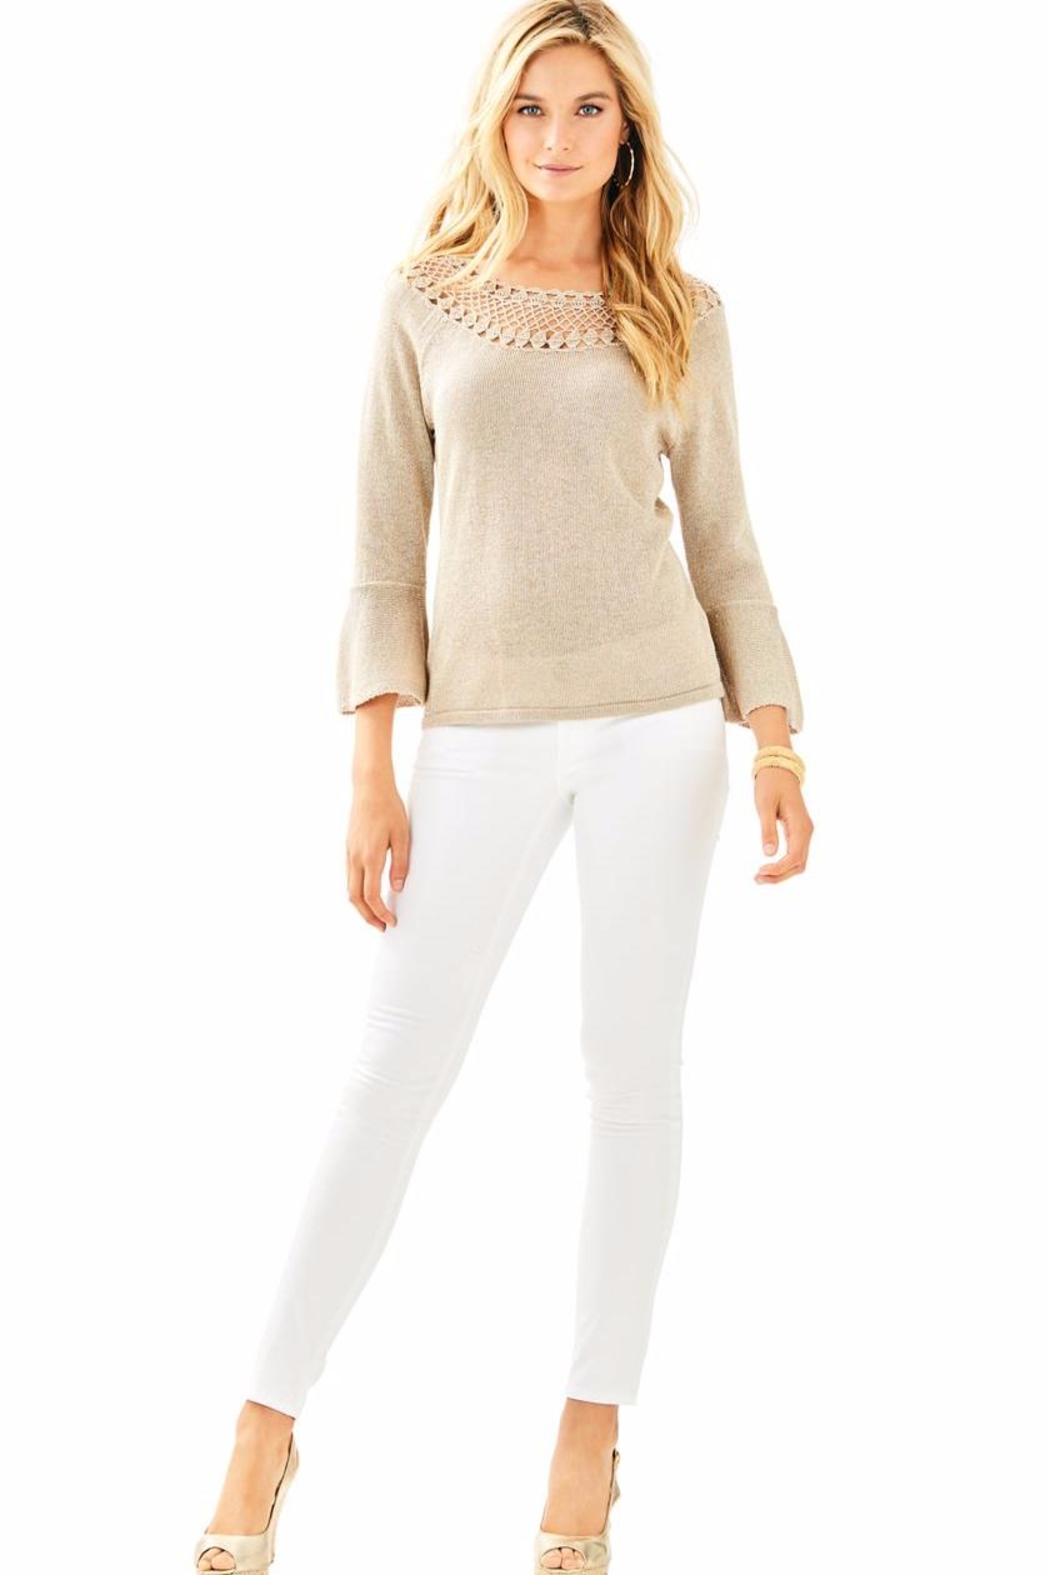 Lilly Pulitzer Barrington Gold Sweater - Main Image